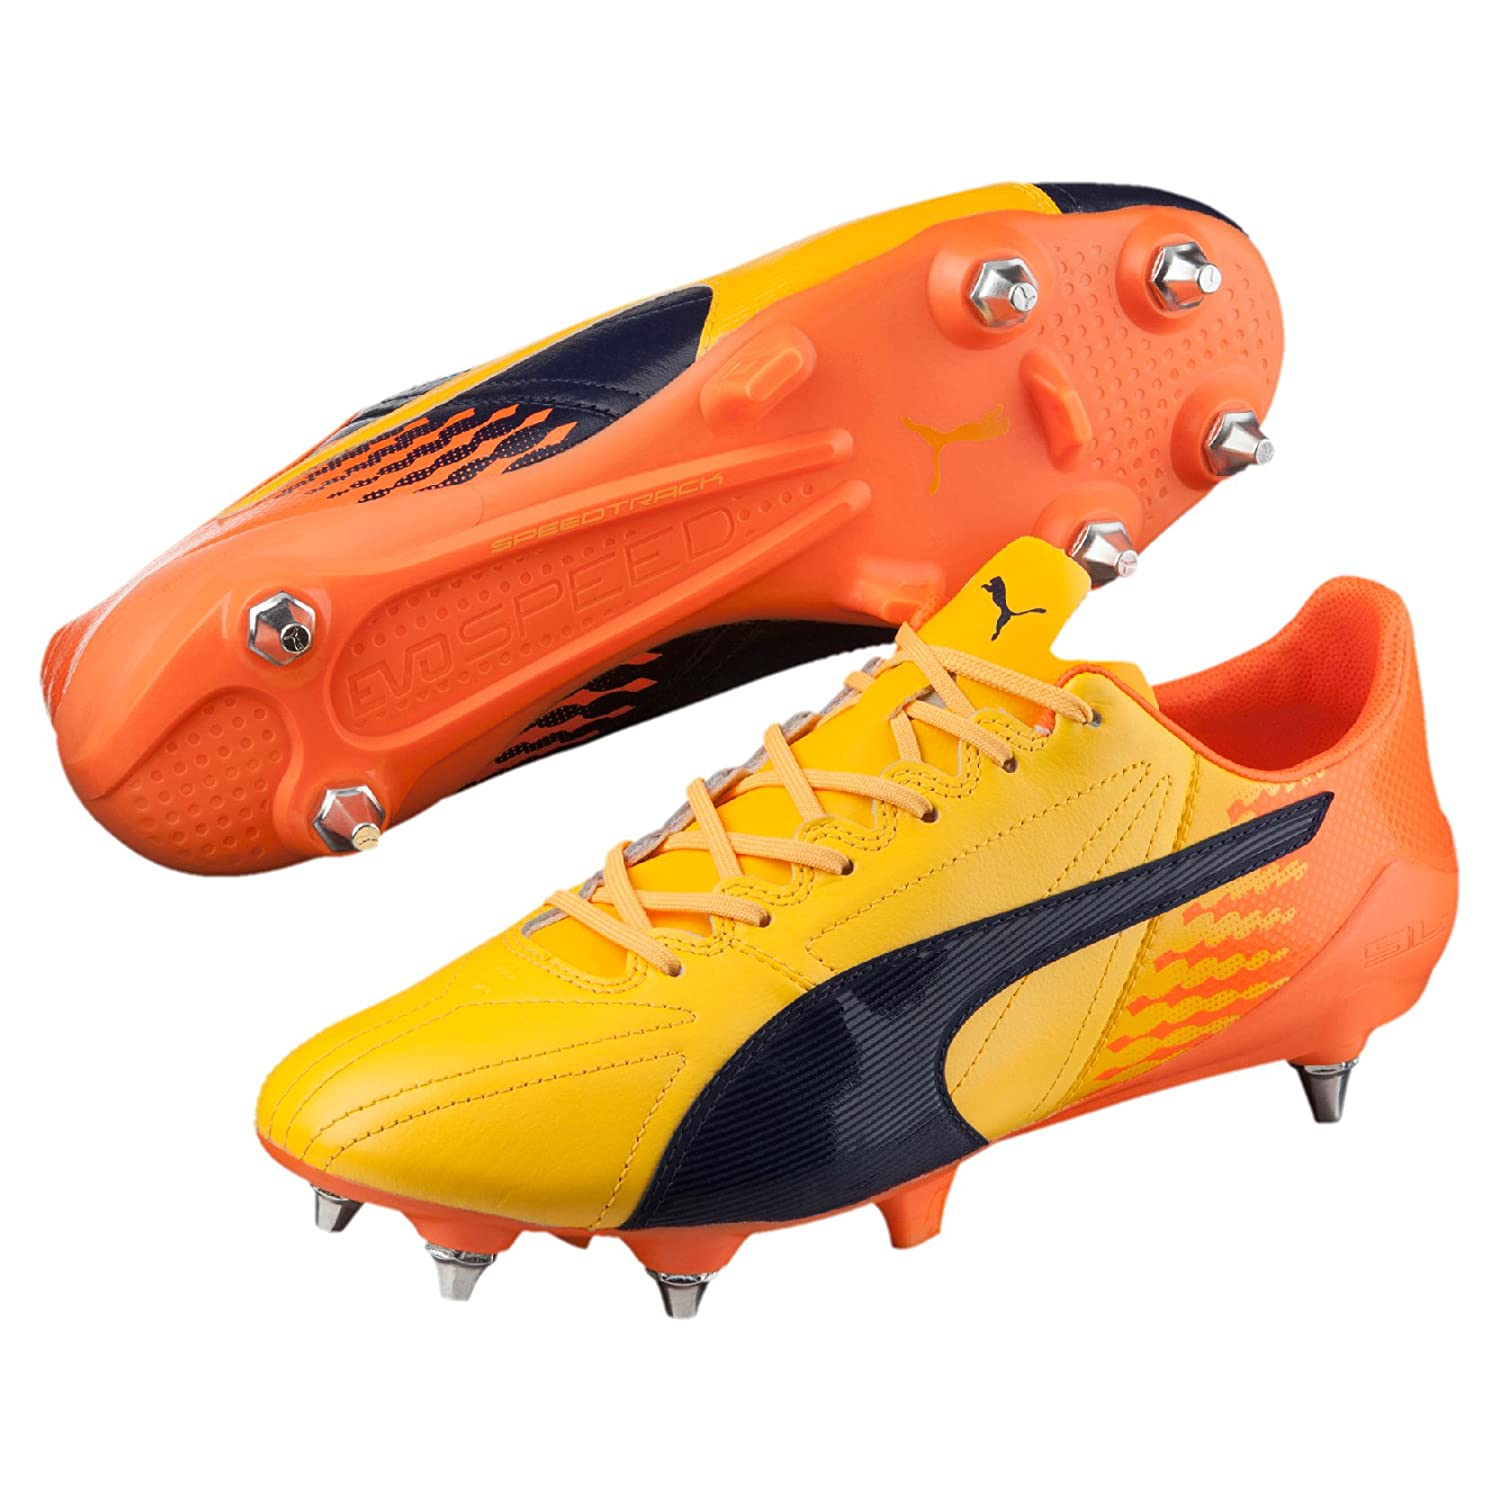 Puma evoSPEED 17 SL K Lth Mx SG, SG, SG, Größe 8, Farbe ULTRA Gelb-Peacoat-Orange Clown Fish 26a5f4